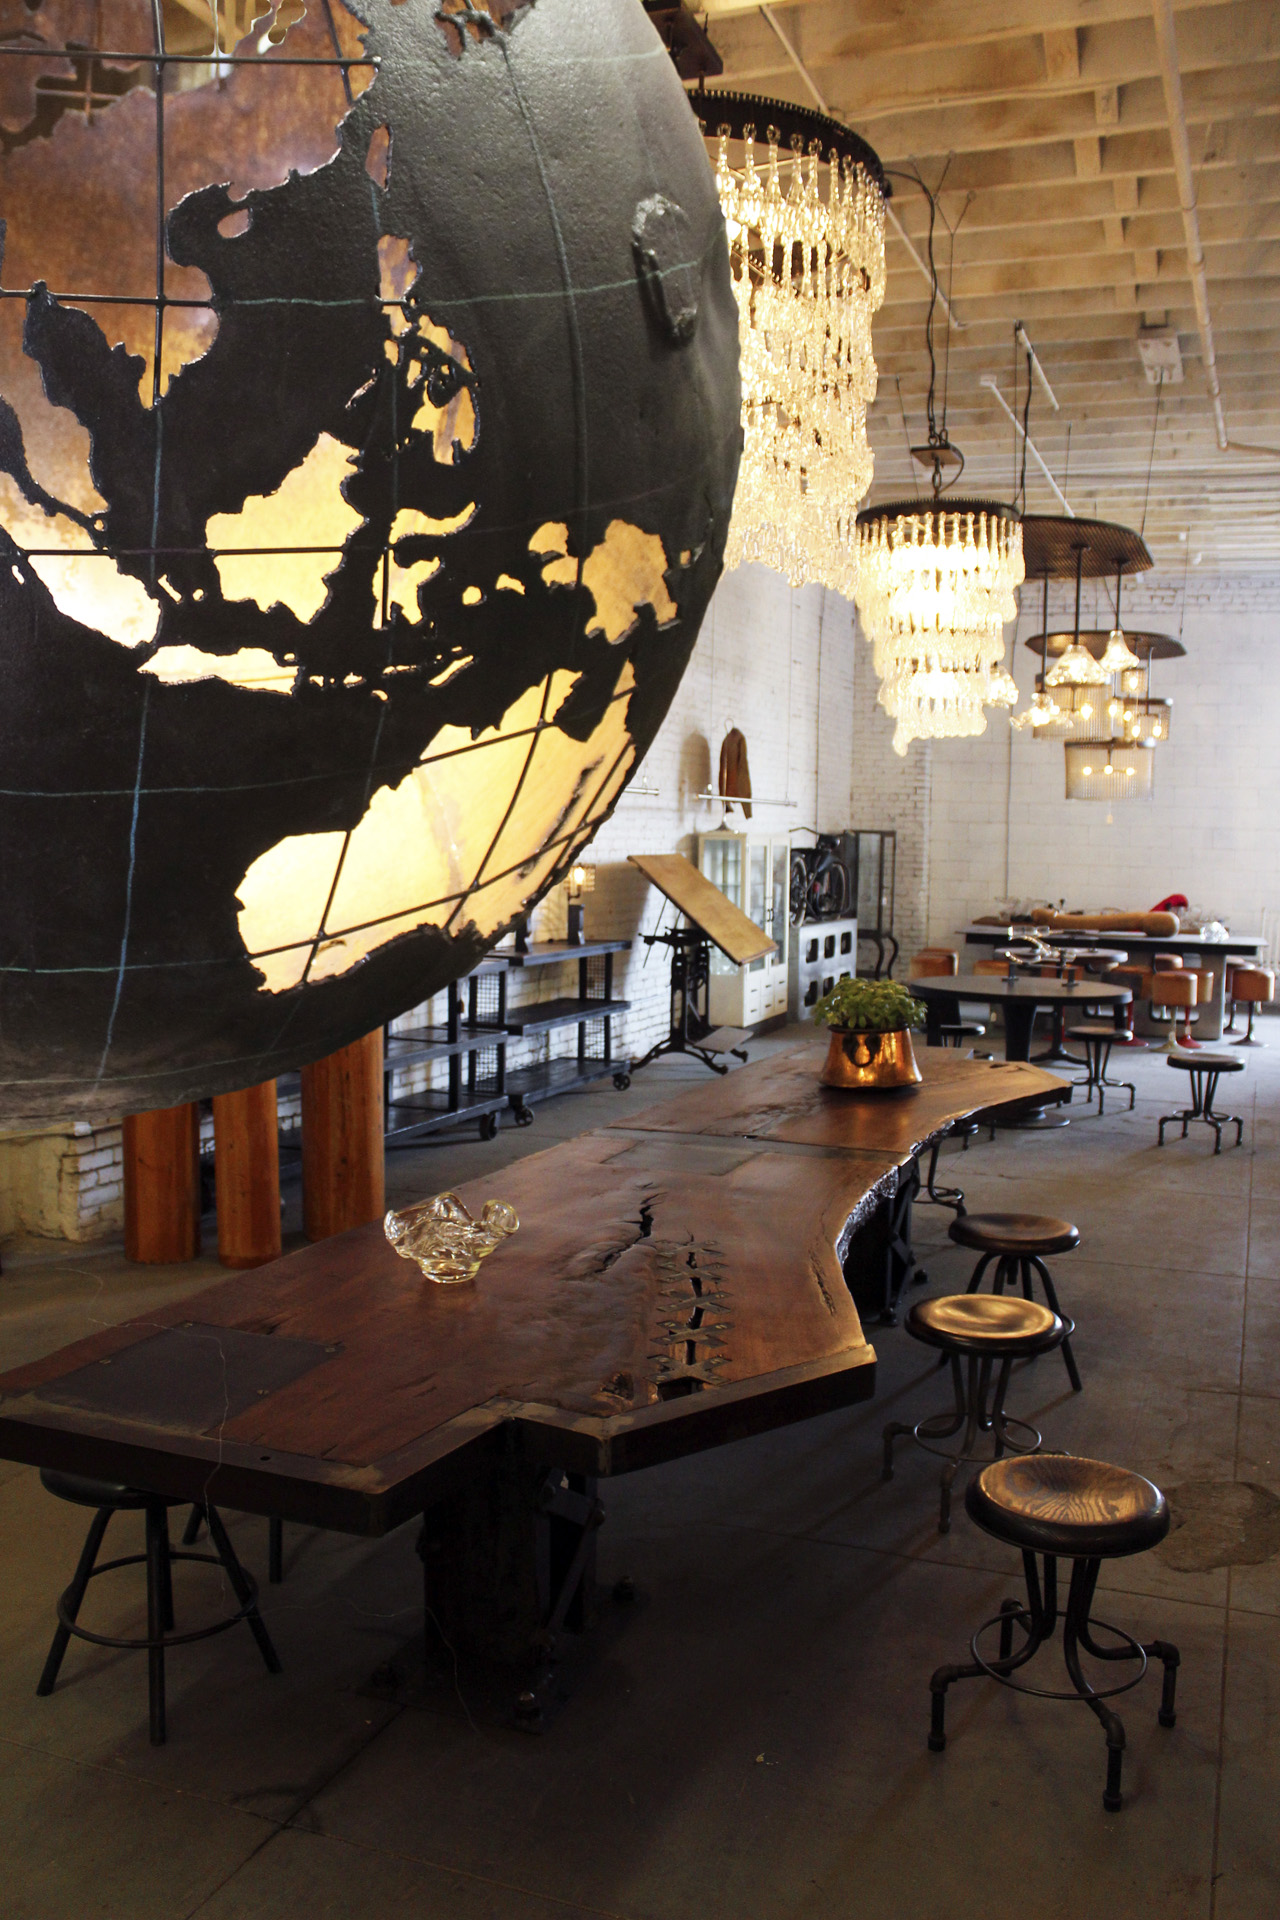 Cleveland Art's LA showroom features a Mooring buoy with the globe cut into it.